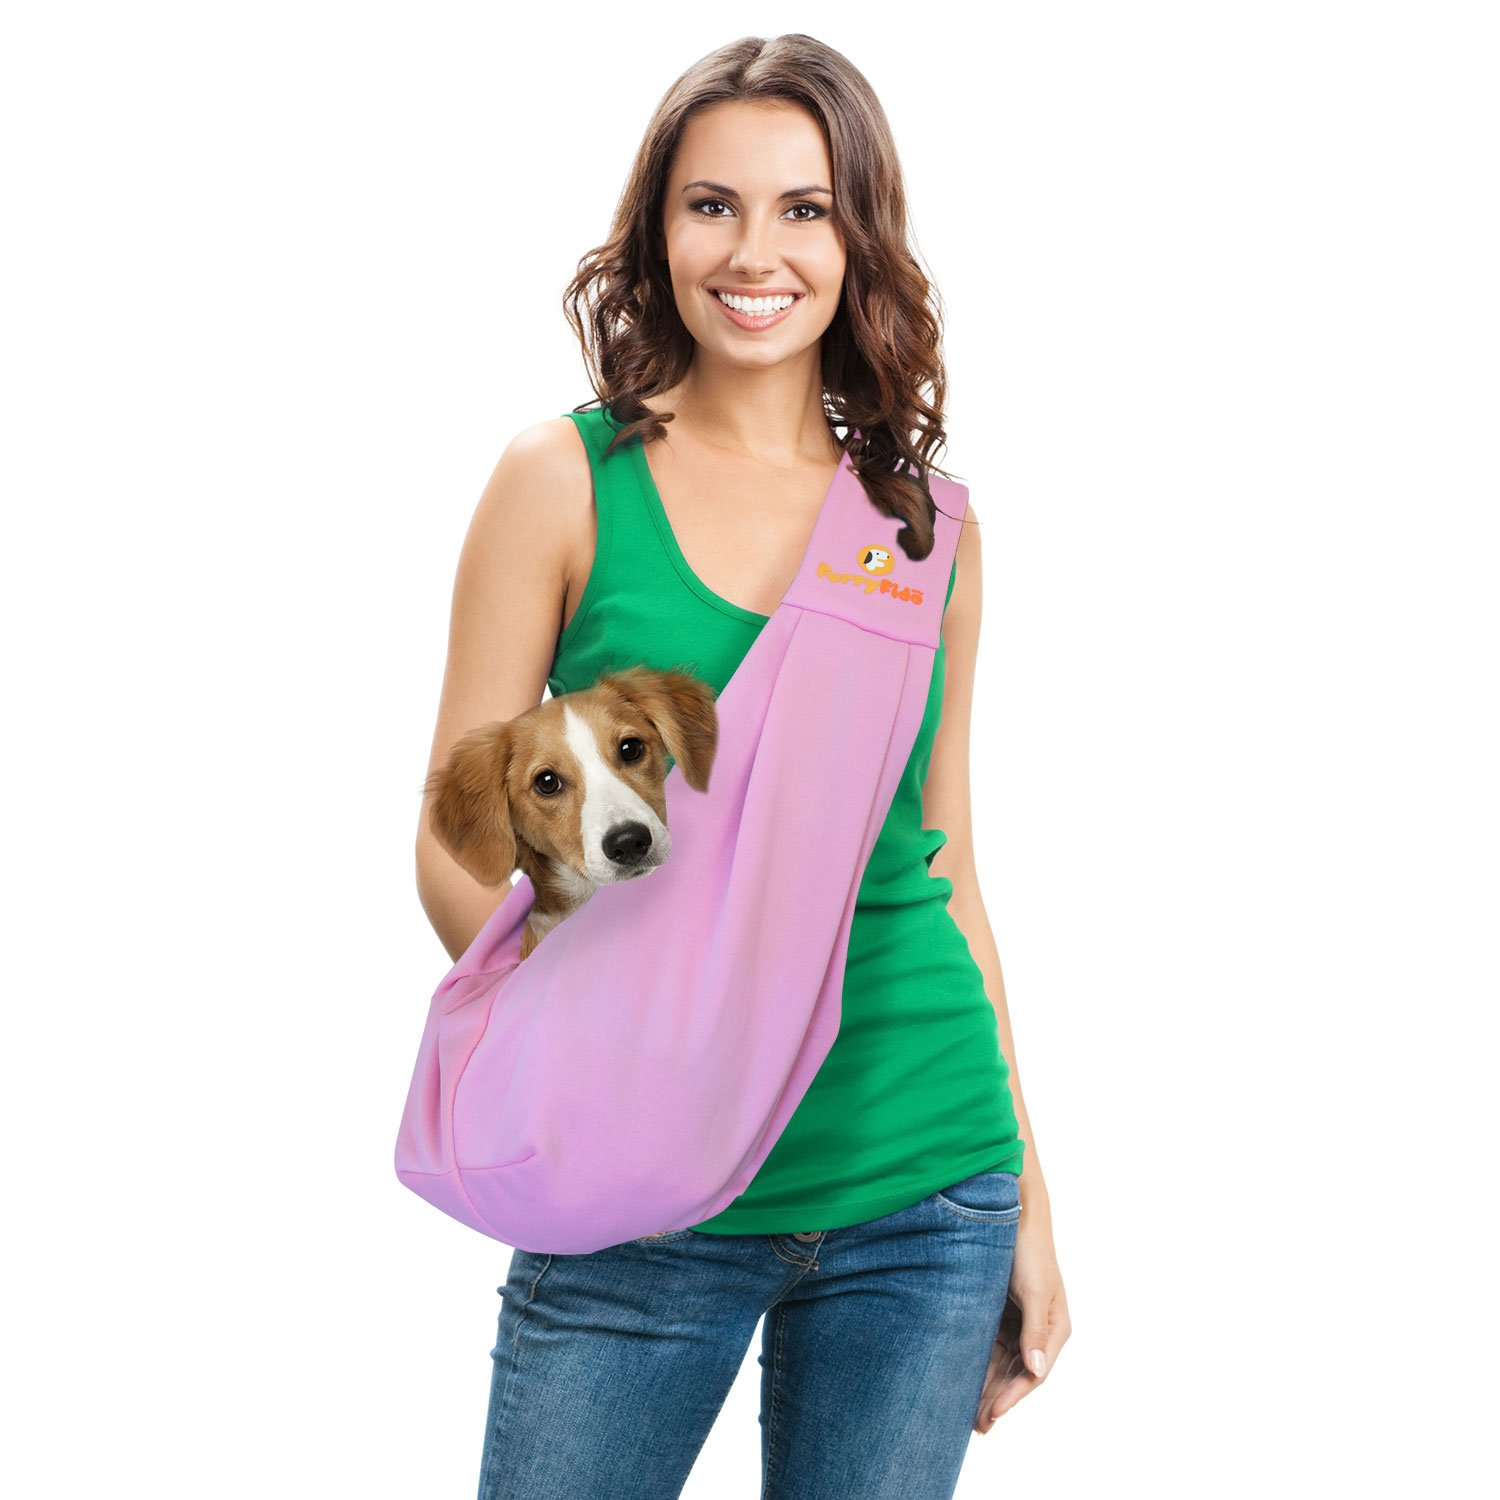 FurryFido Reversible Pet Sling Carrier for Cats Dogs up to 13+ lbs, Pink by FurryFido